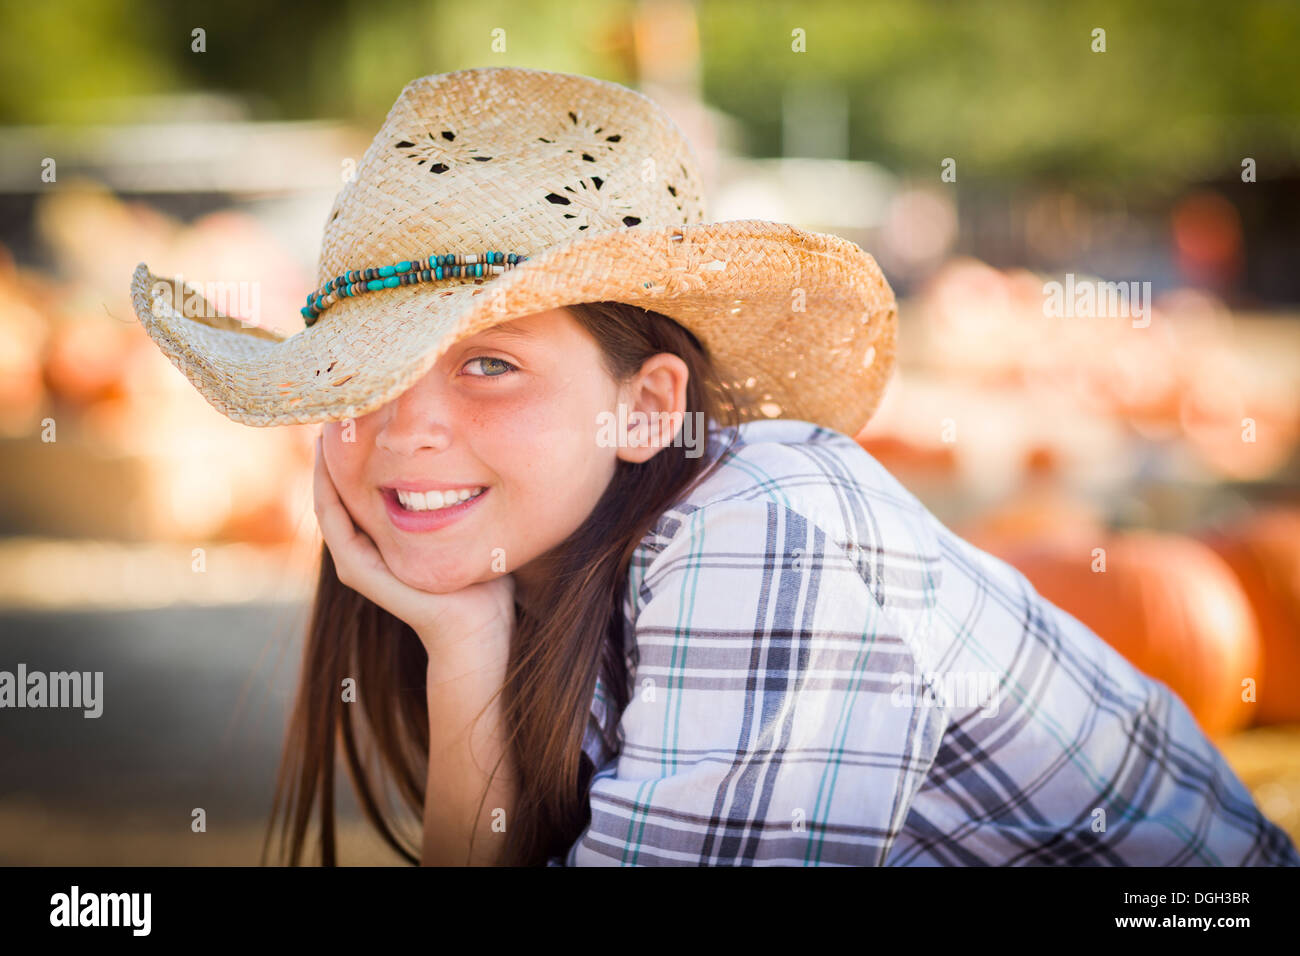 Preteen Girl Wearing Cowboy Hat Portrait at the Pumpkin Patch in a Rustic Setting. Stock Photo